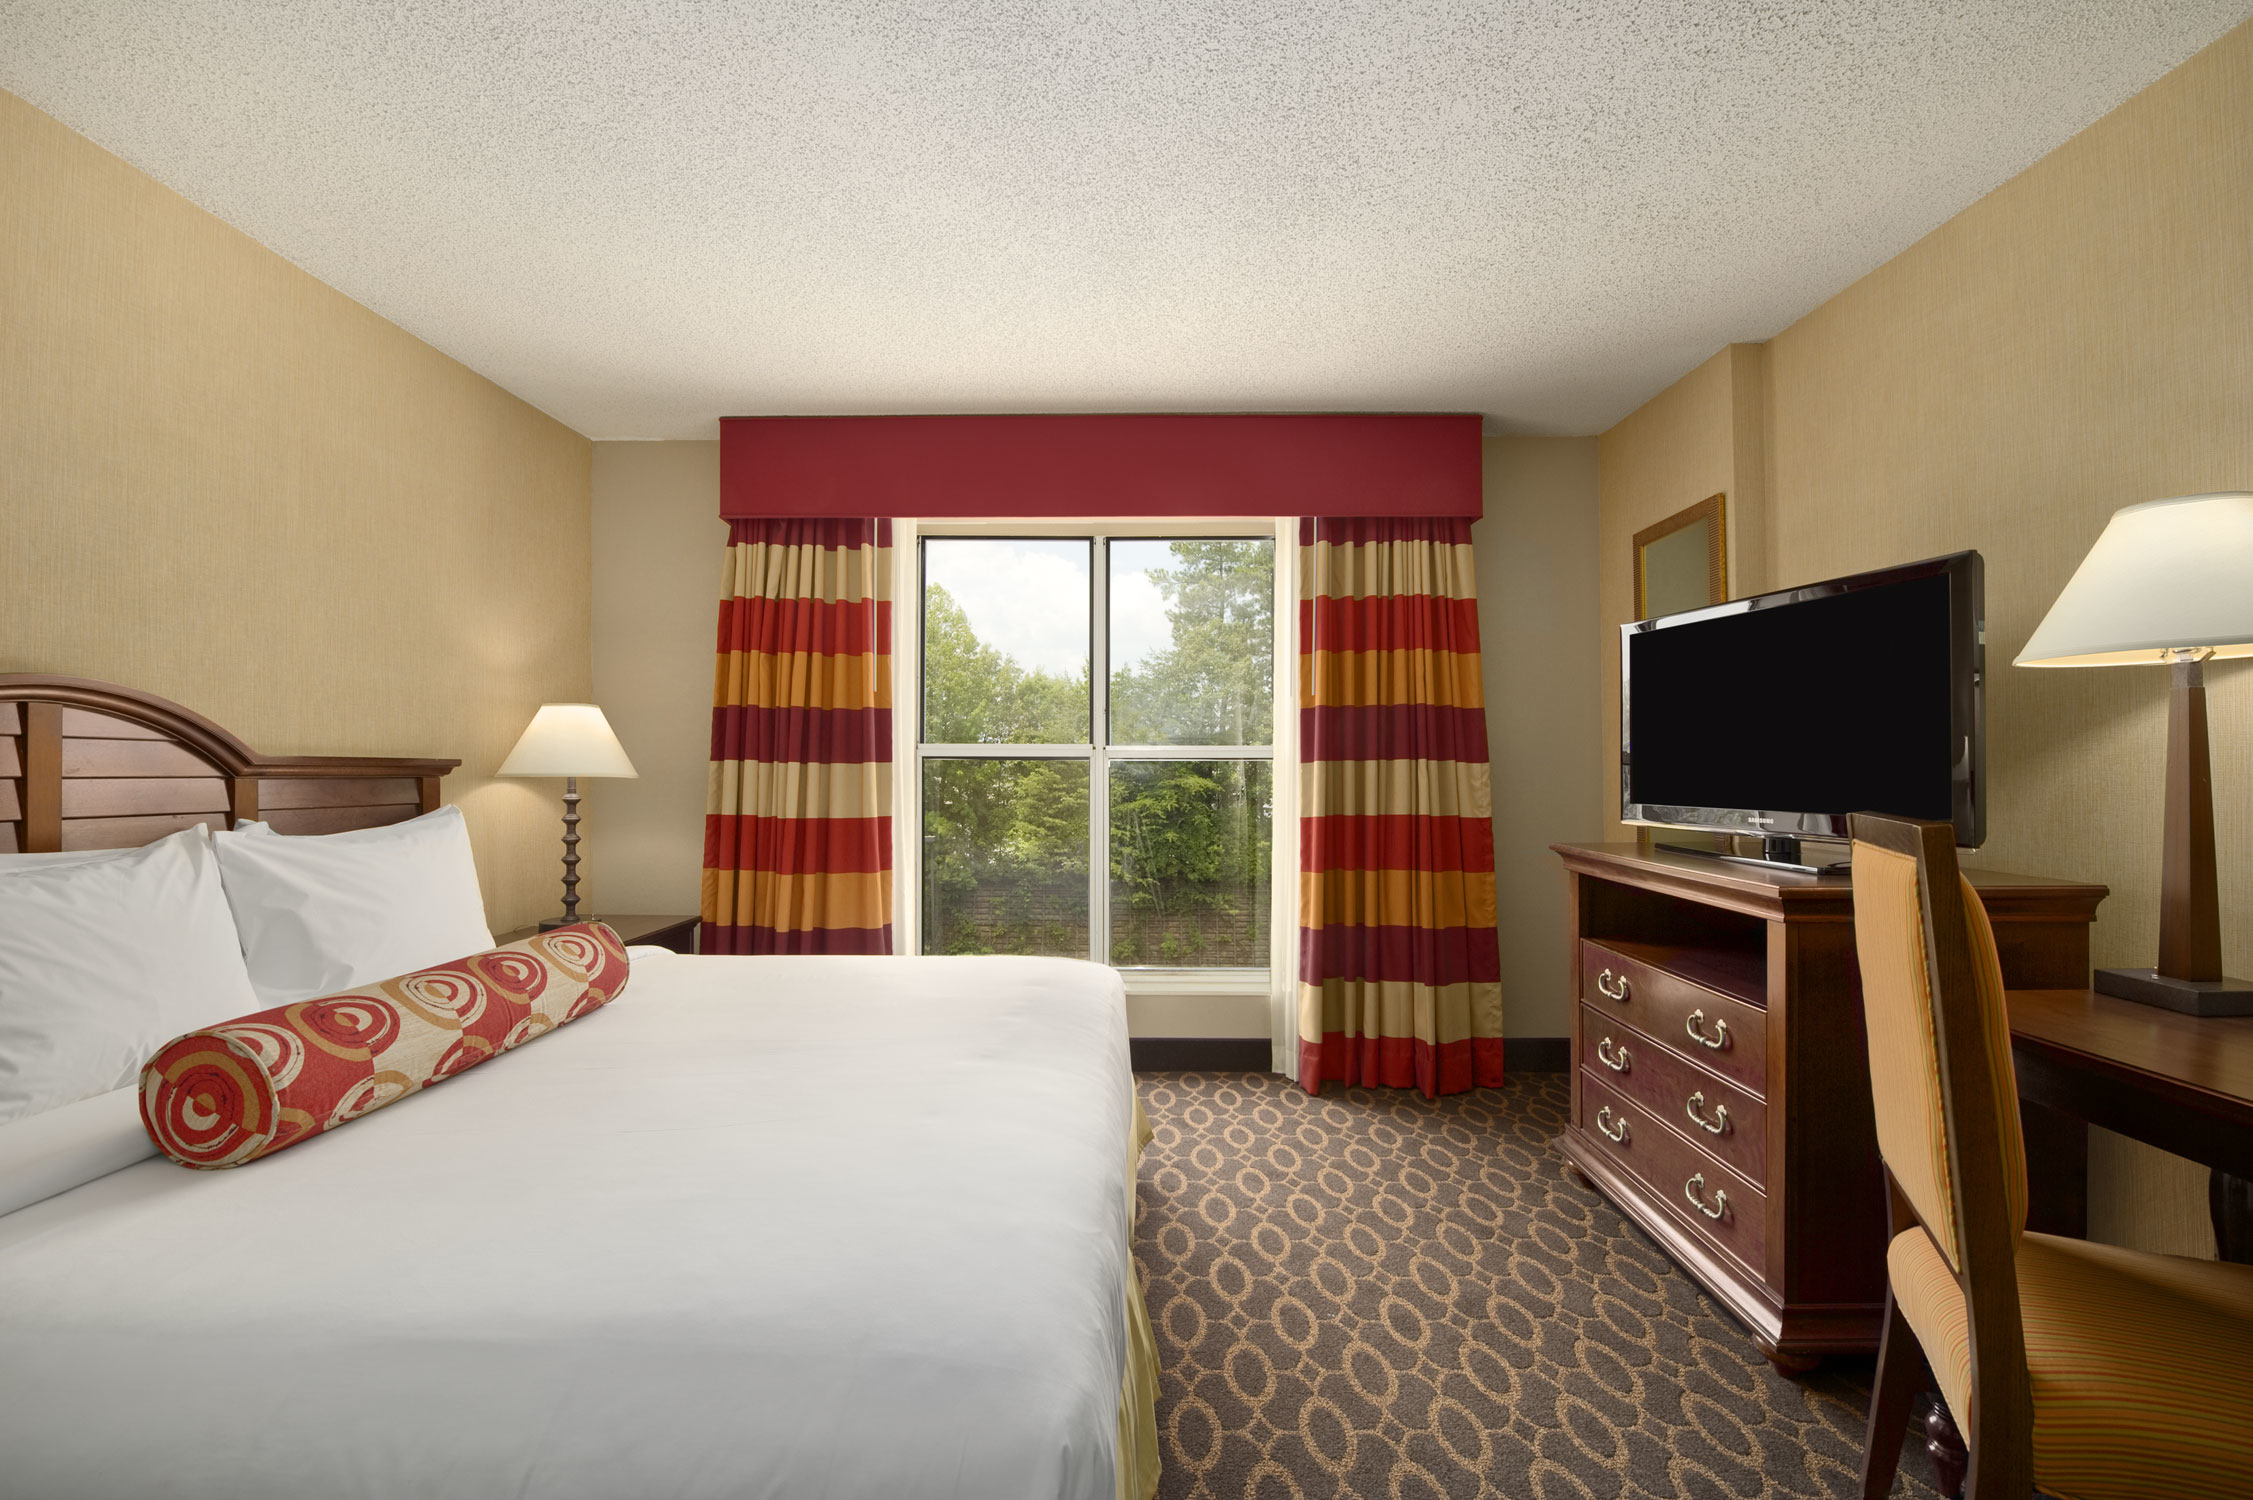 Embassy Suites by Hilton Atlanta Airport 4700 Southport Road